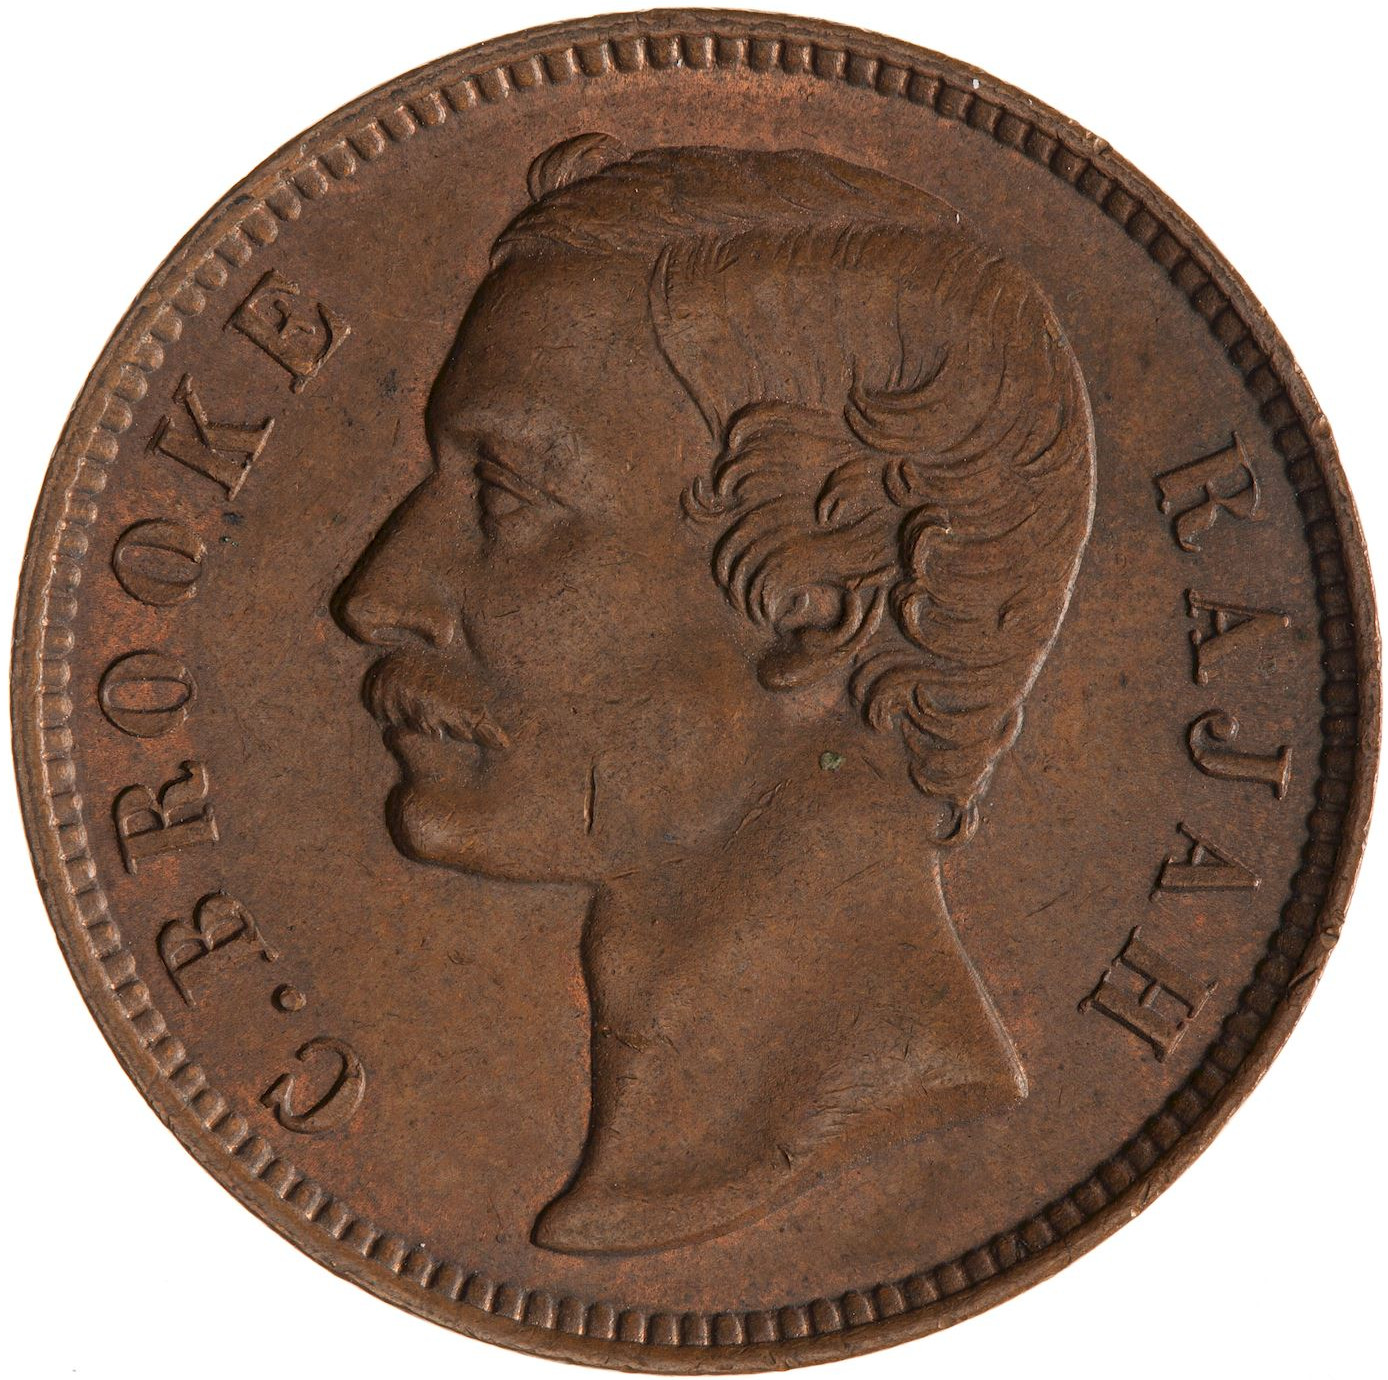 One Cent: Photo Coin - 1 Cent, Sarawak, 1870